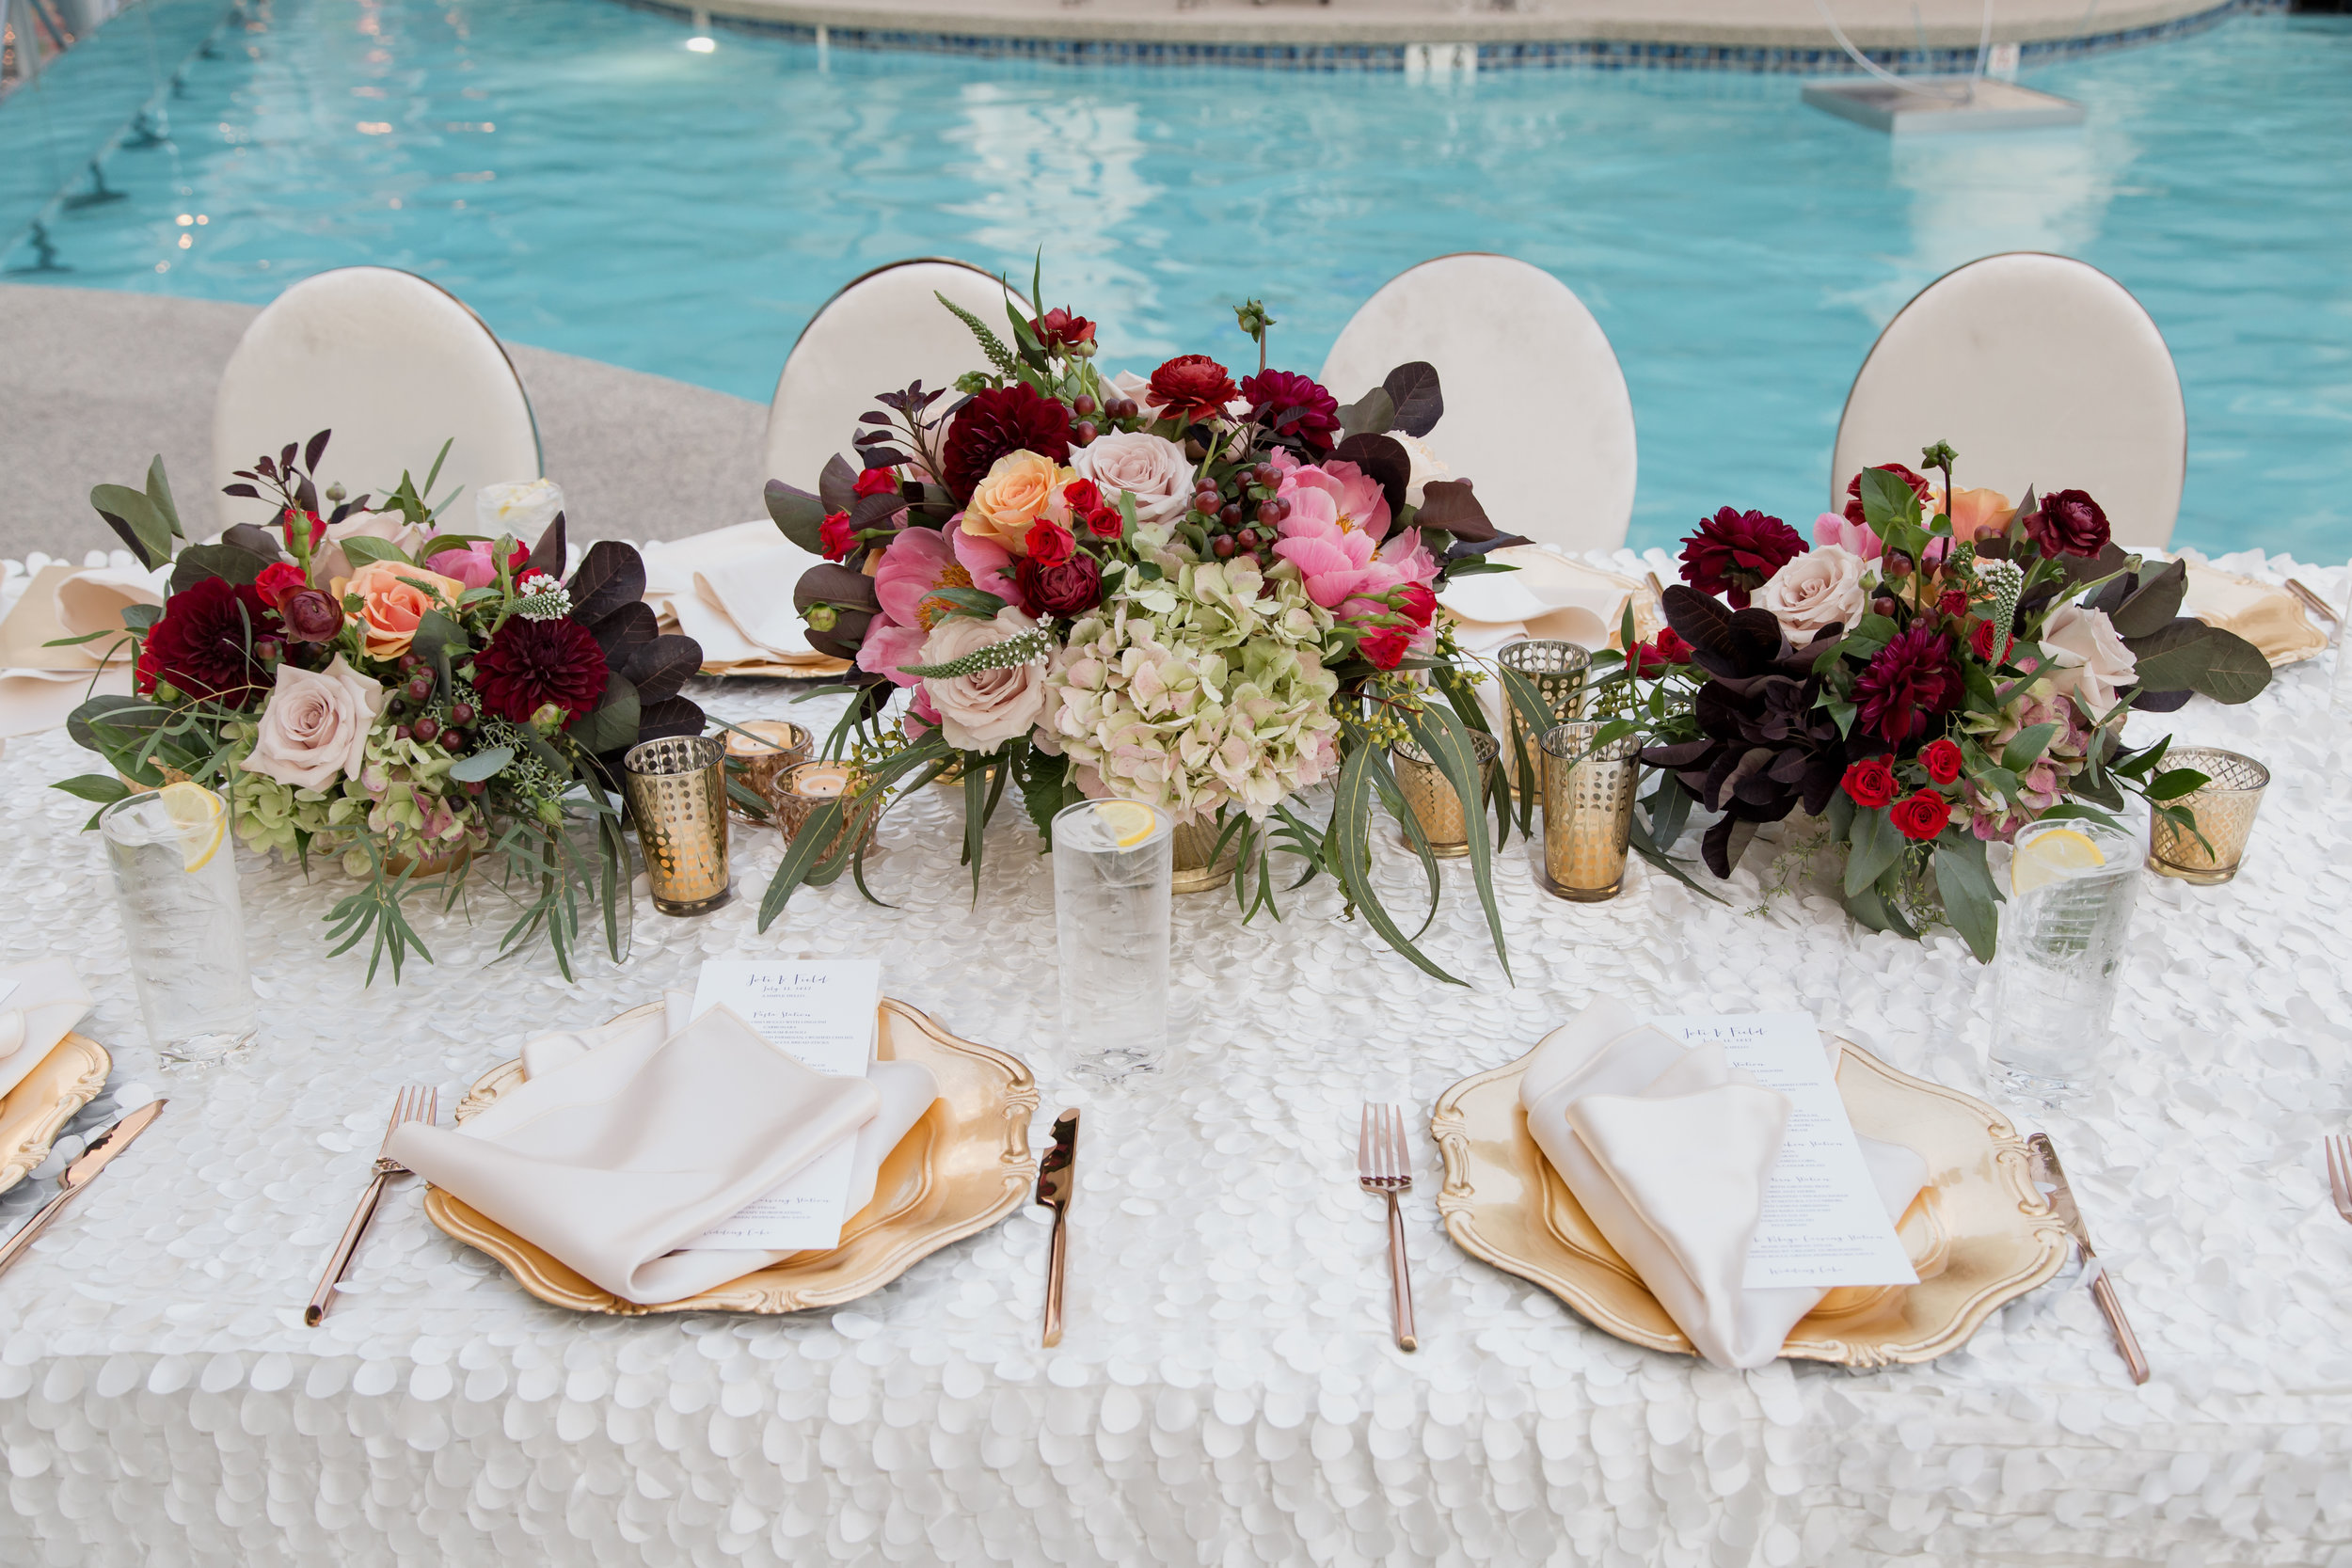 Jewel toned centerpieces with gold chargers at poolside wedding.Destination Wedding Planner  Andrea Eppolito ·Photos by  Adam Frazier Photography ·Floral and Decor by  Destinations by Design · Lighting by  LED Unplugged ·Venue · Invitations  Ceci New York  · Menus by  Alligator Soup